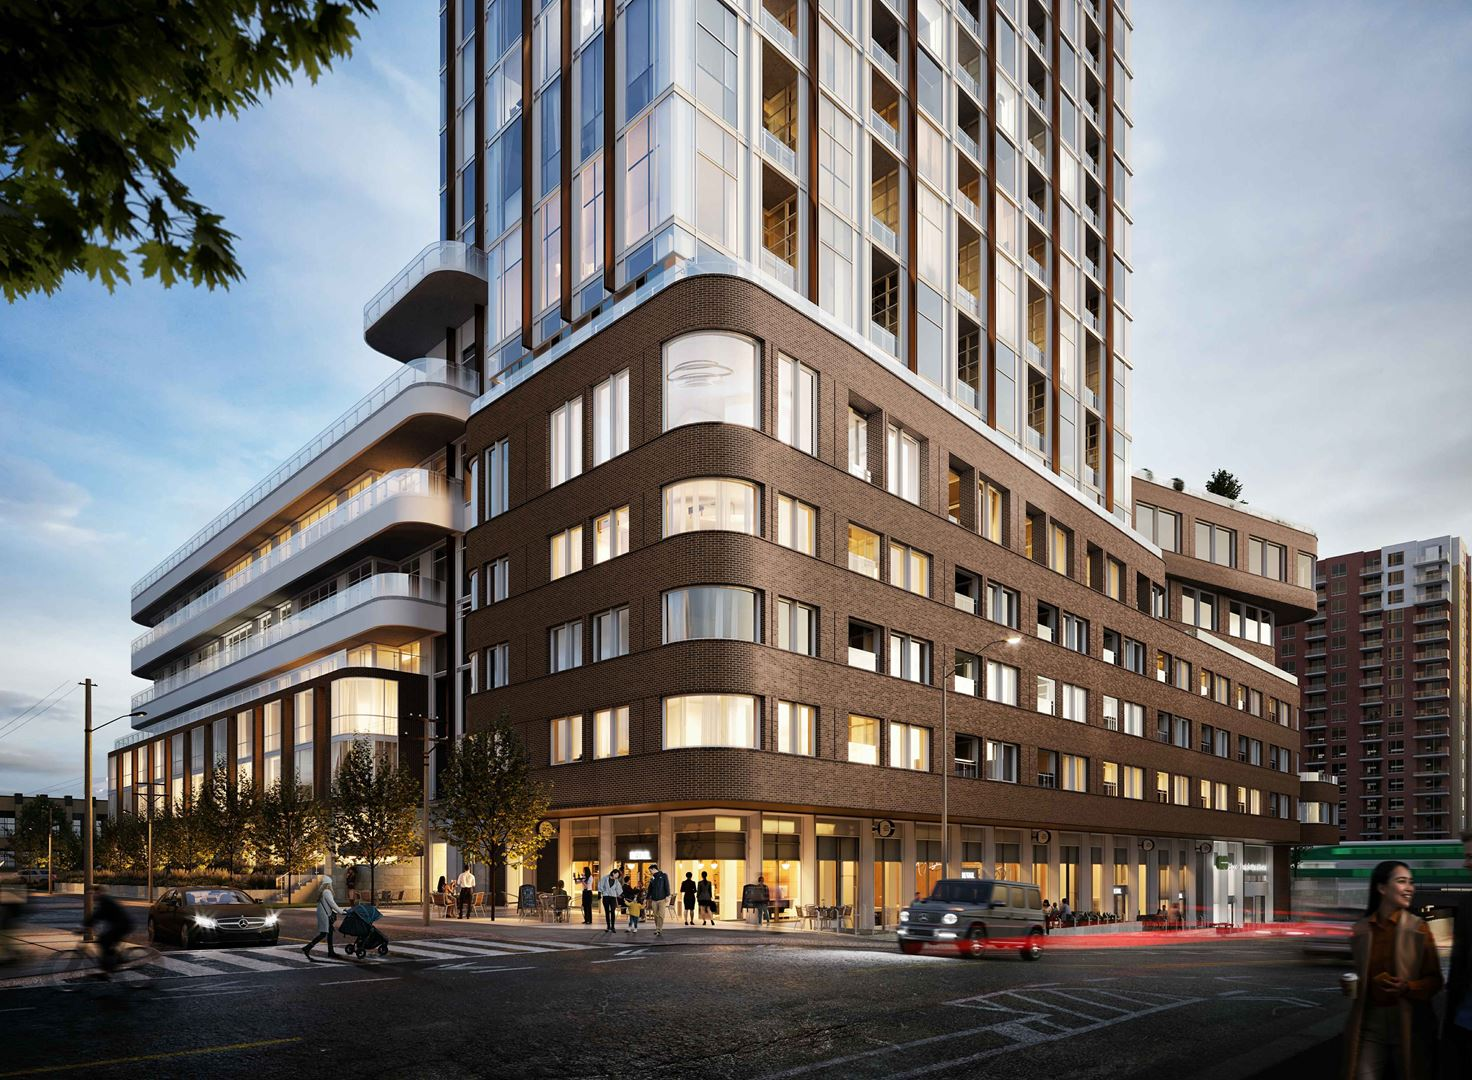 Rendering of 1319 Bloor Street West Condos exterior podium and street view in the evening